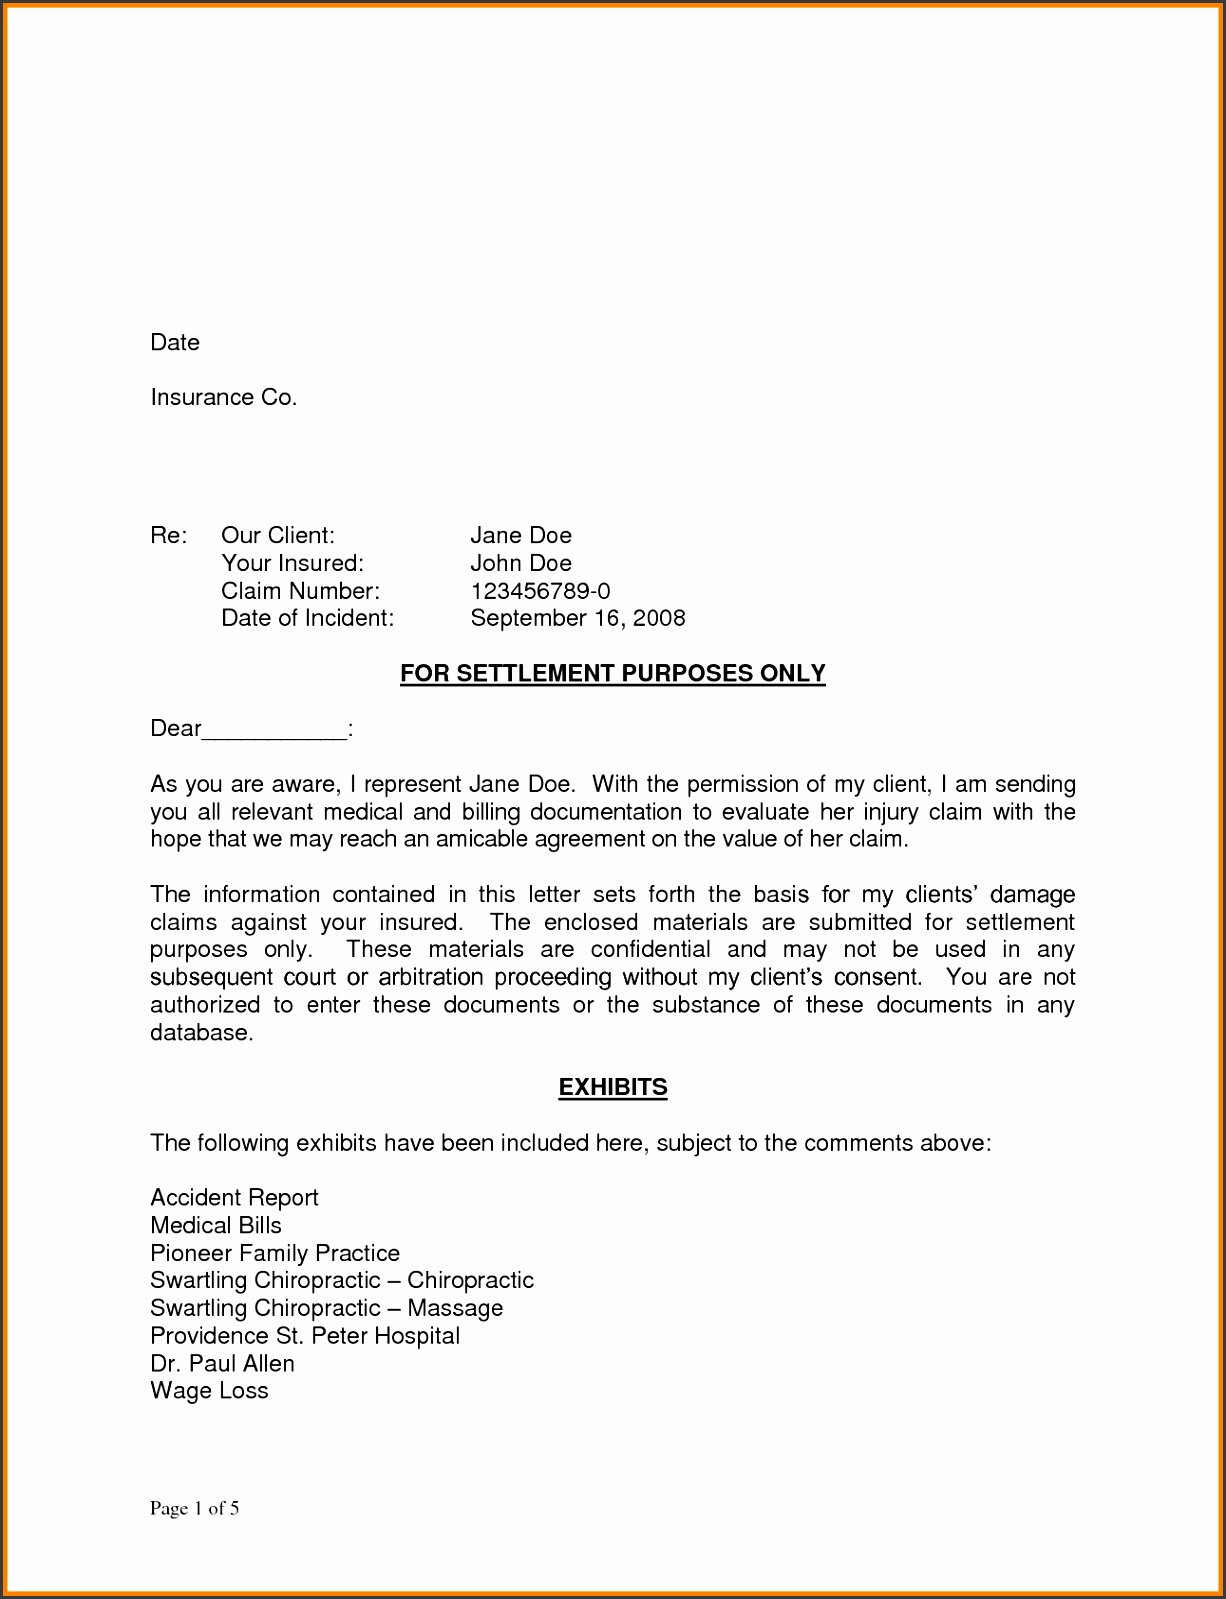 Demand final demand letter sample what is a demand letter settlement deman for Attorney demand letters Attorney demand letter sample